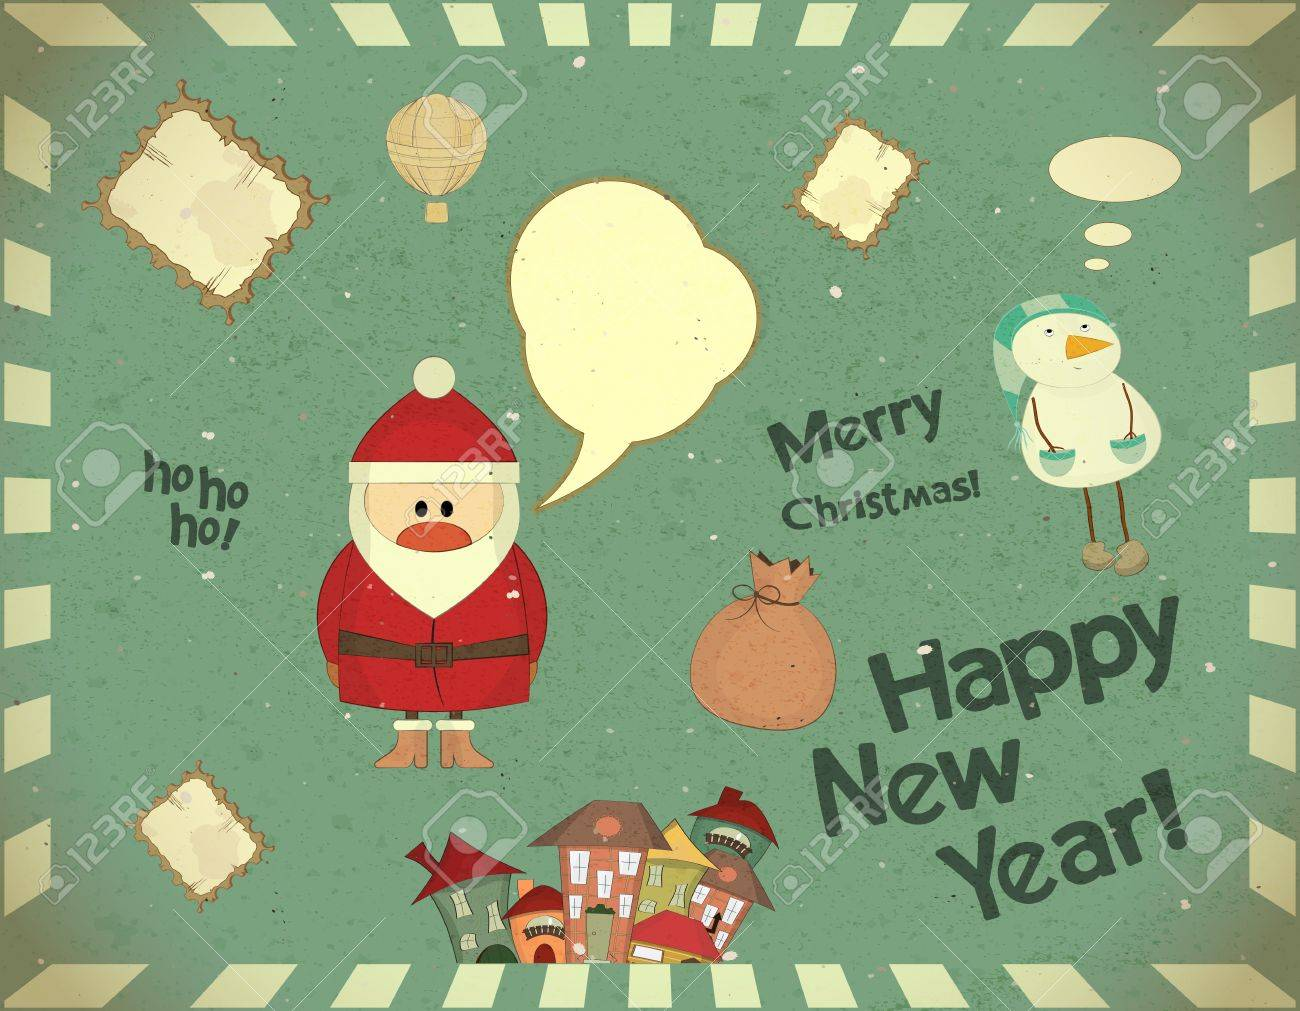 Santa Claus and snowman on vintage background, Merry Christmas postcard in Retro style Stock Vector - 15498616